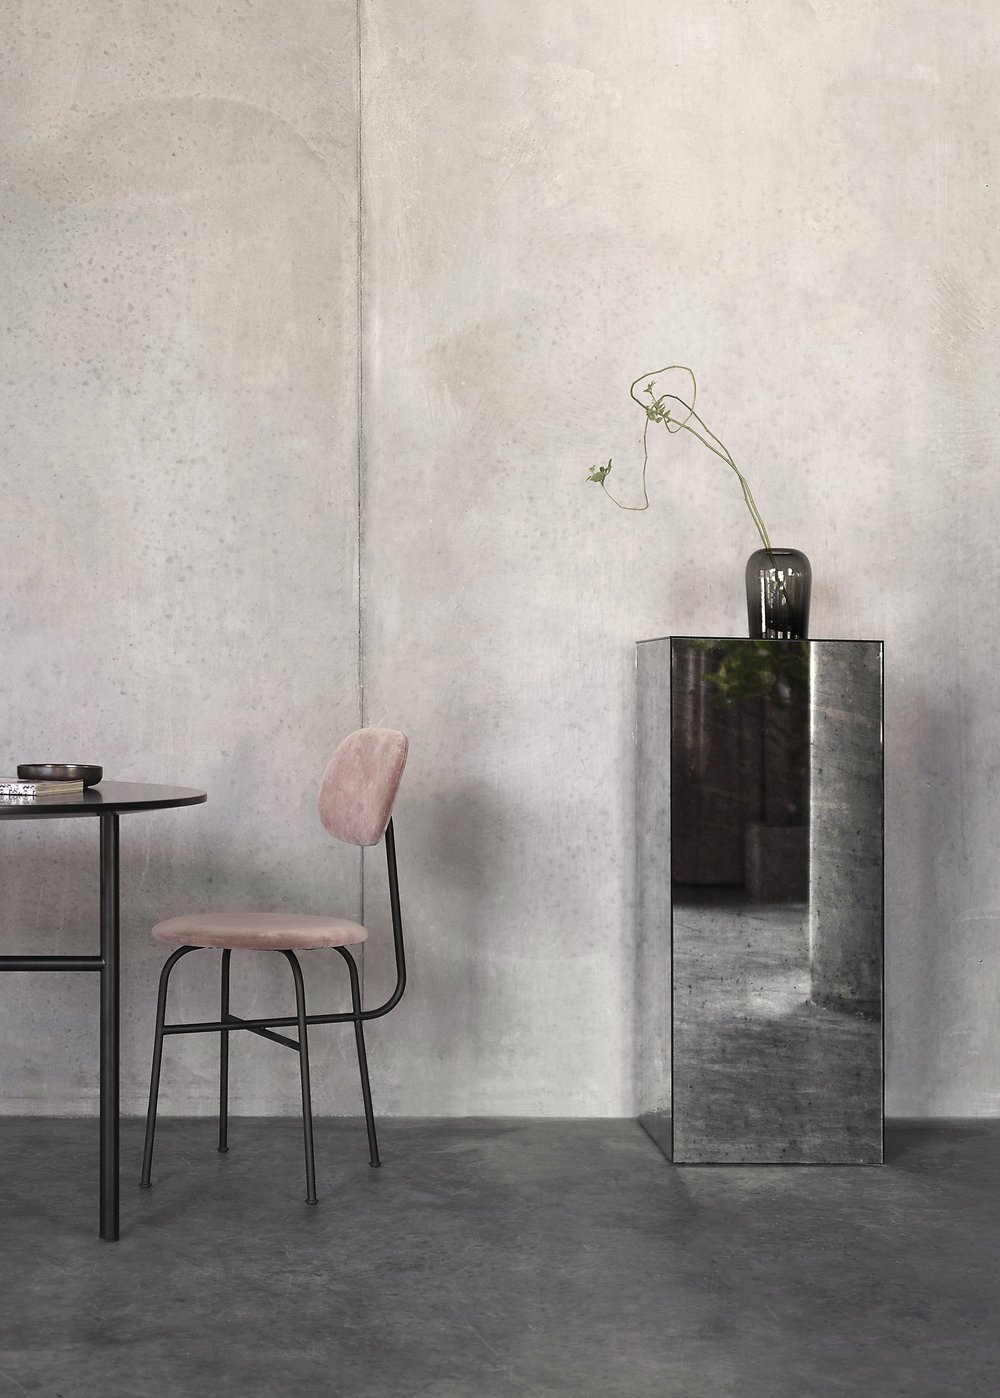 menu-space-by-menu-x-norm-architects-interiors_dezeen_2364_col_8.jpg